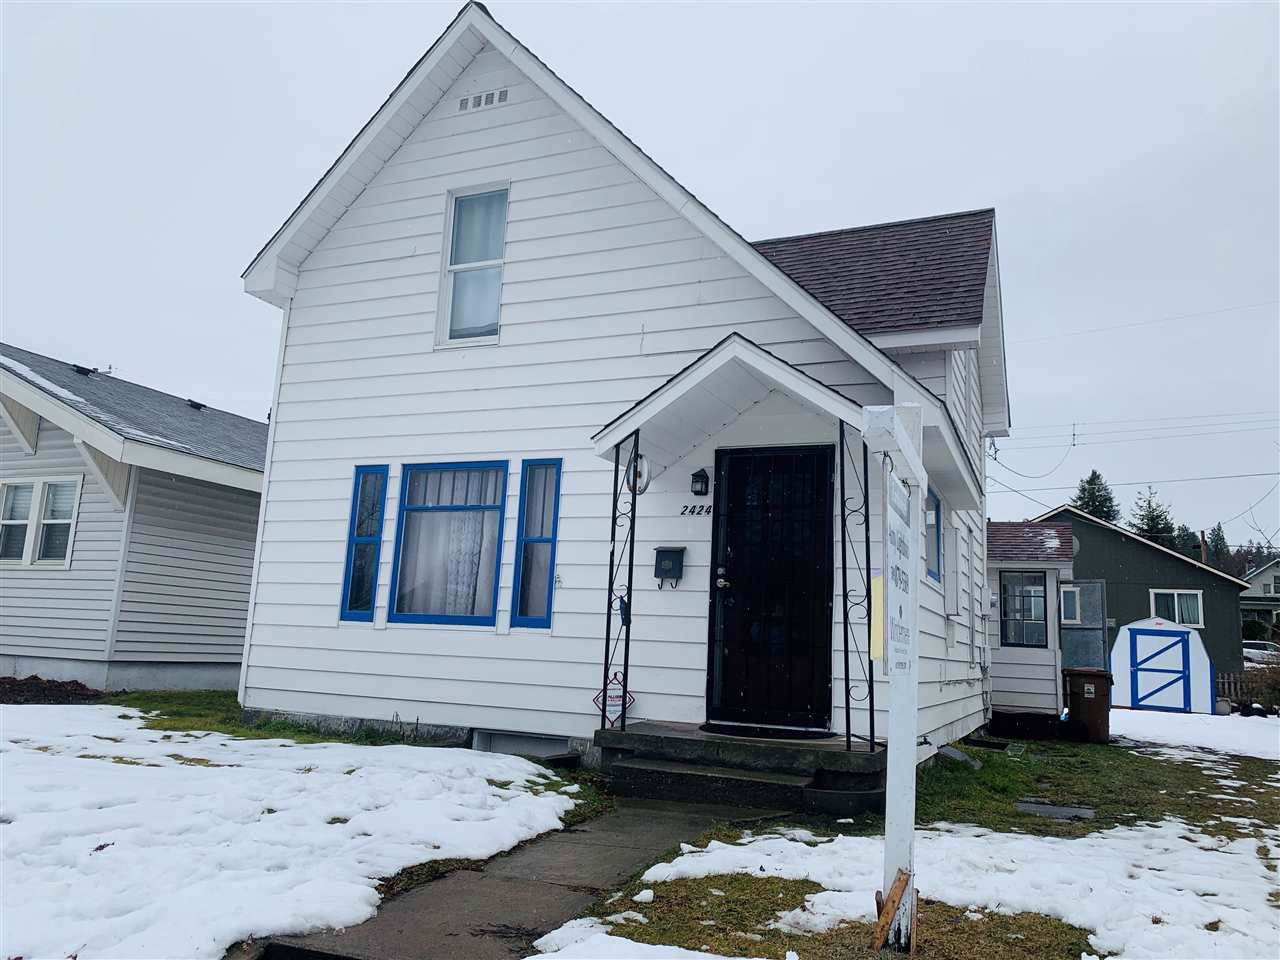 2424 6th Ave - Photo 1